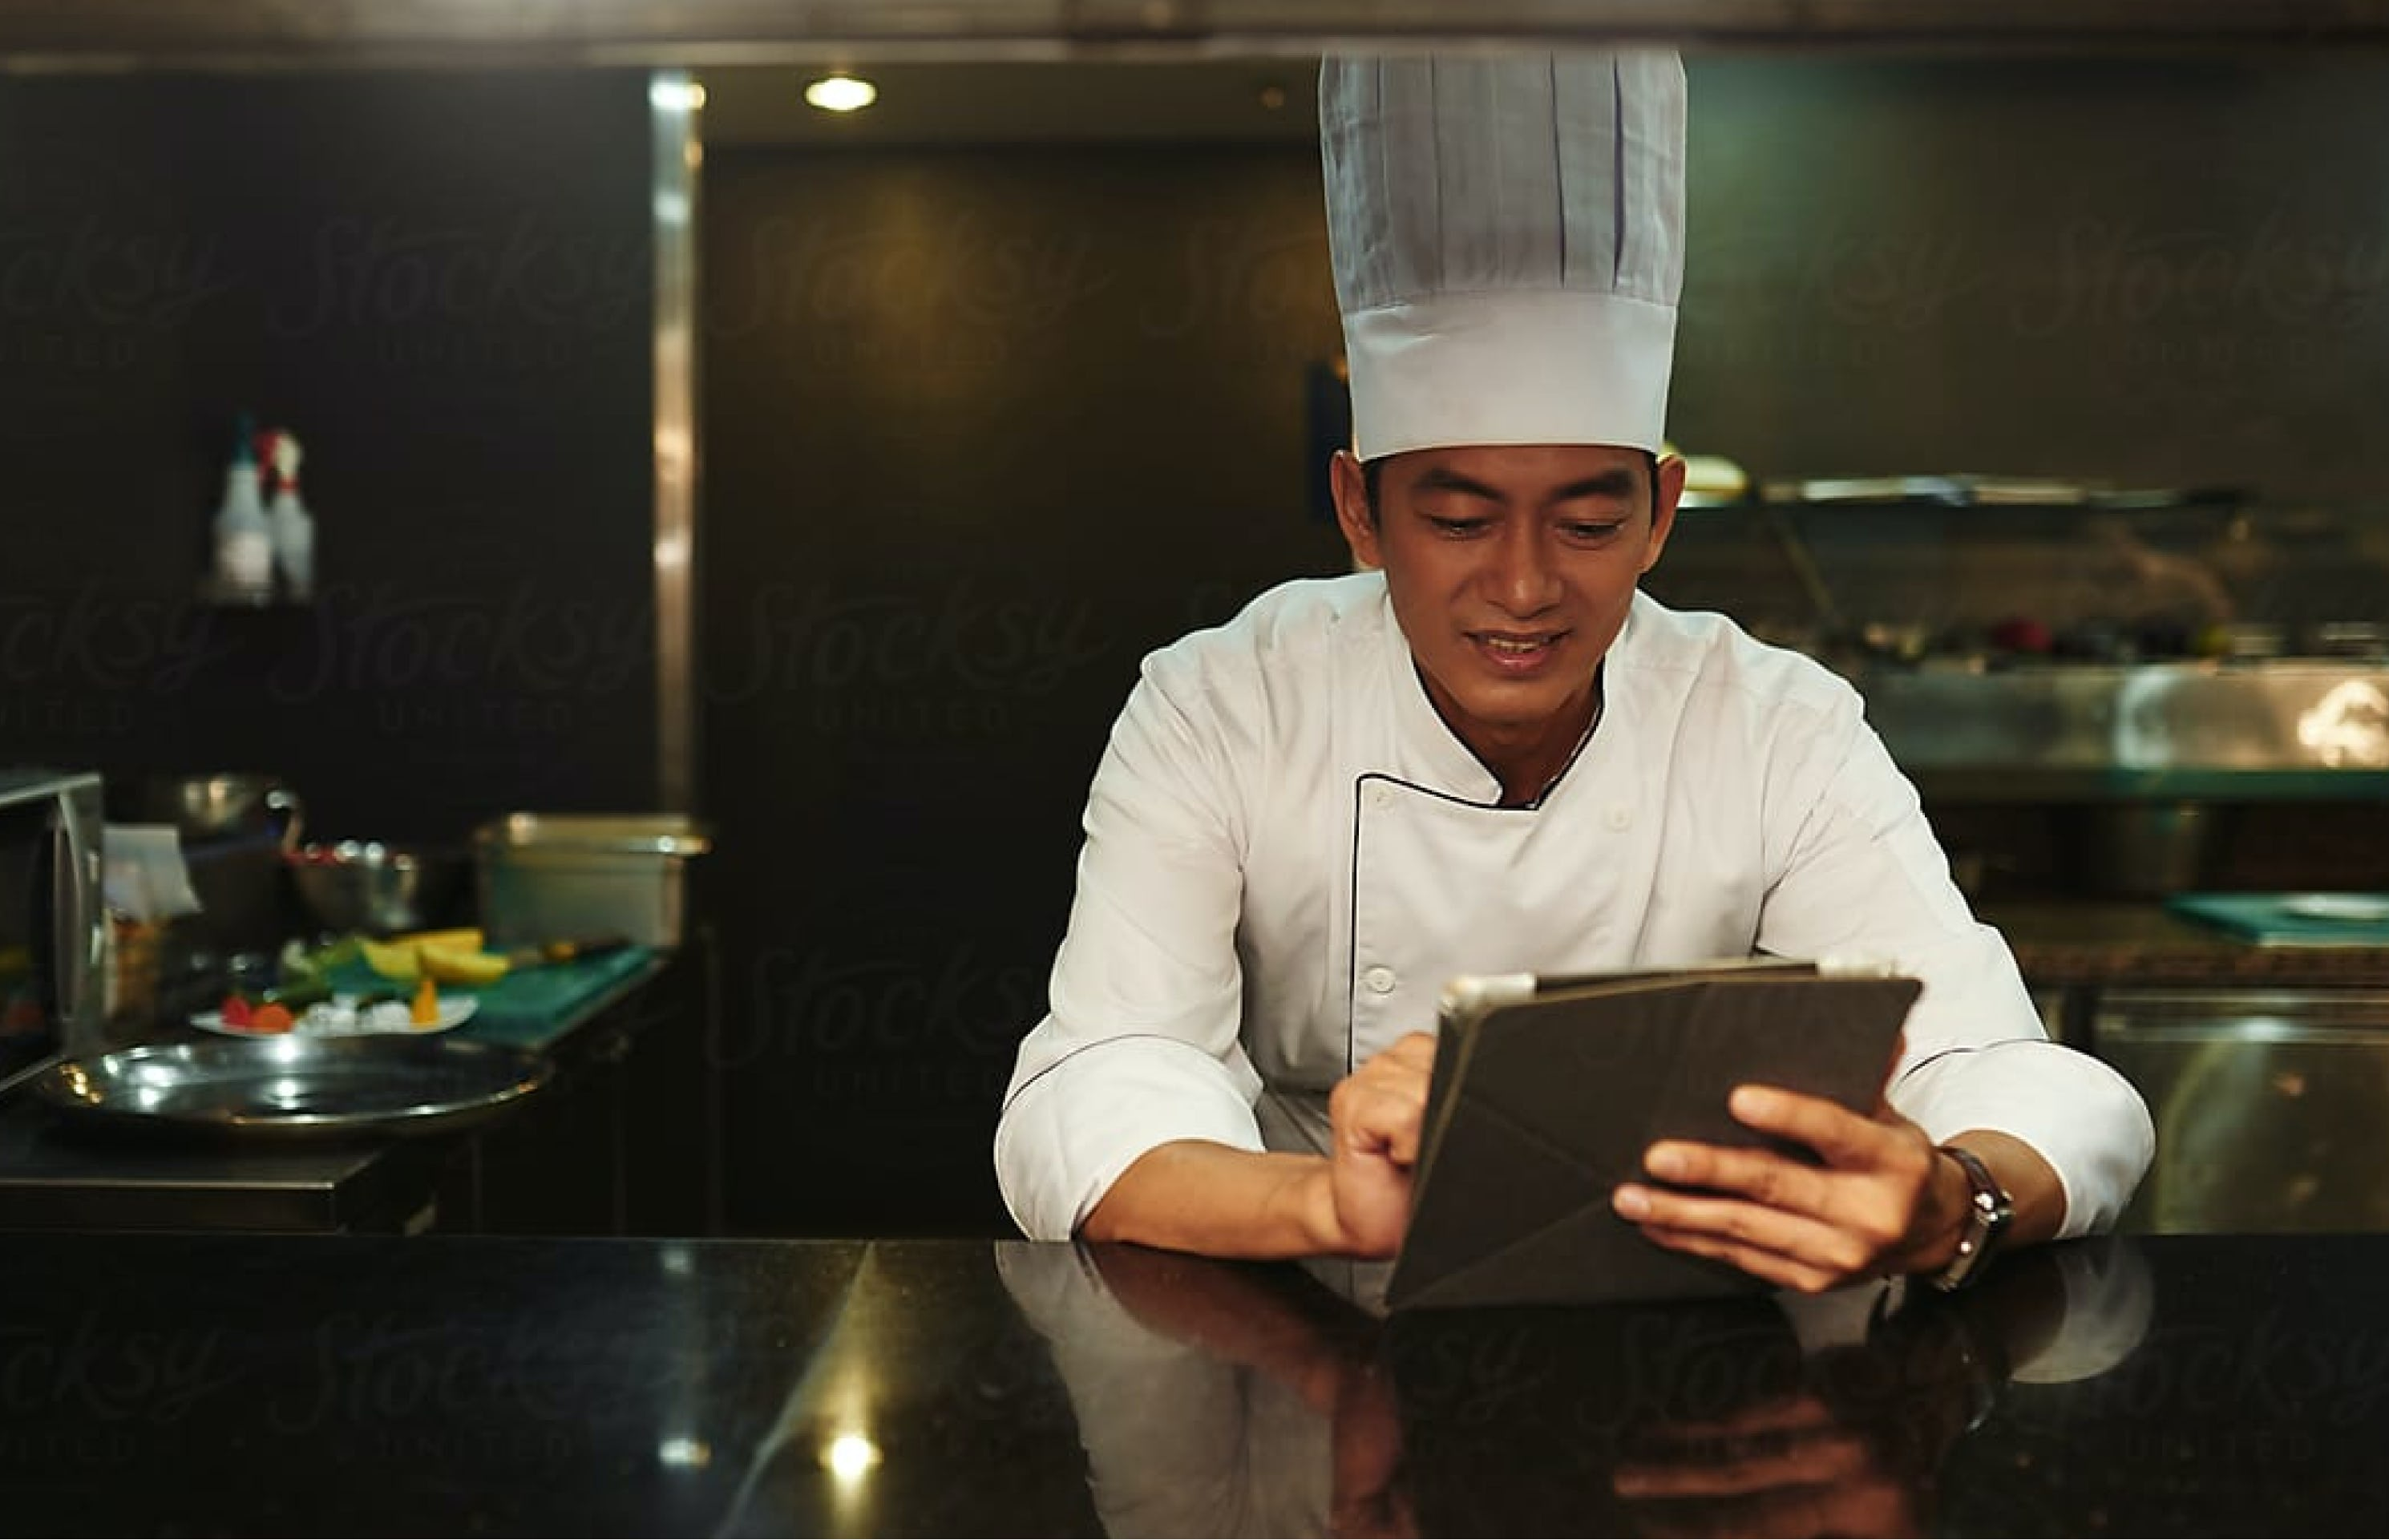 chef-using-an-ipad-in-a-cloud-kitchen-smartcitykitchens-singapore